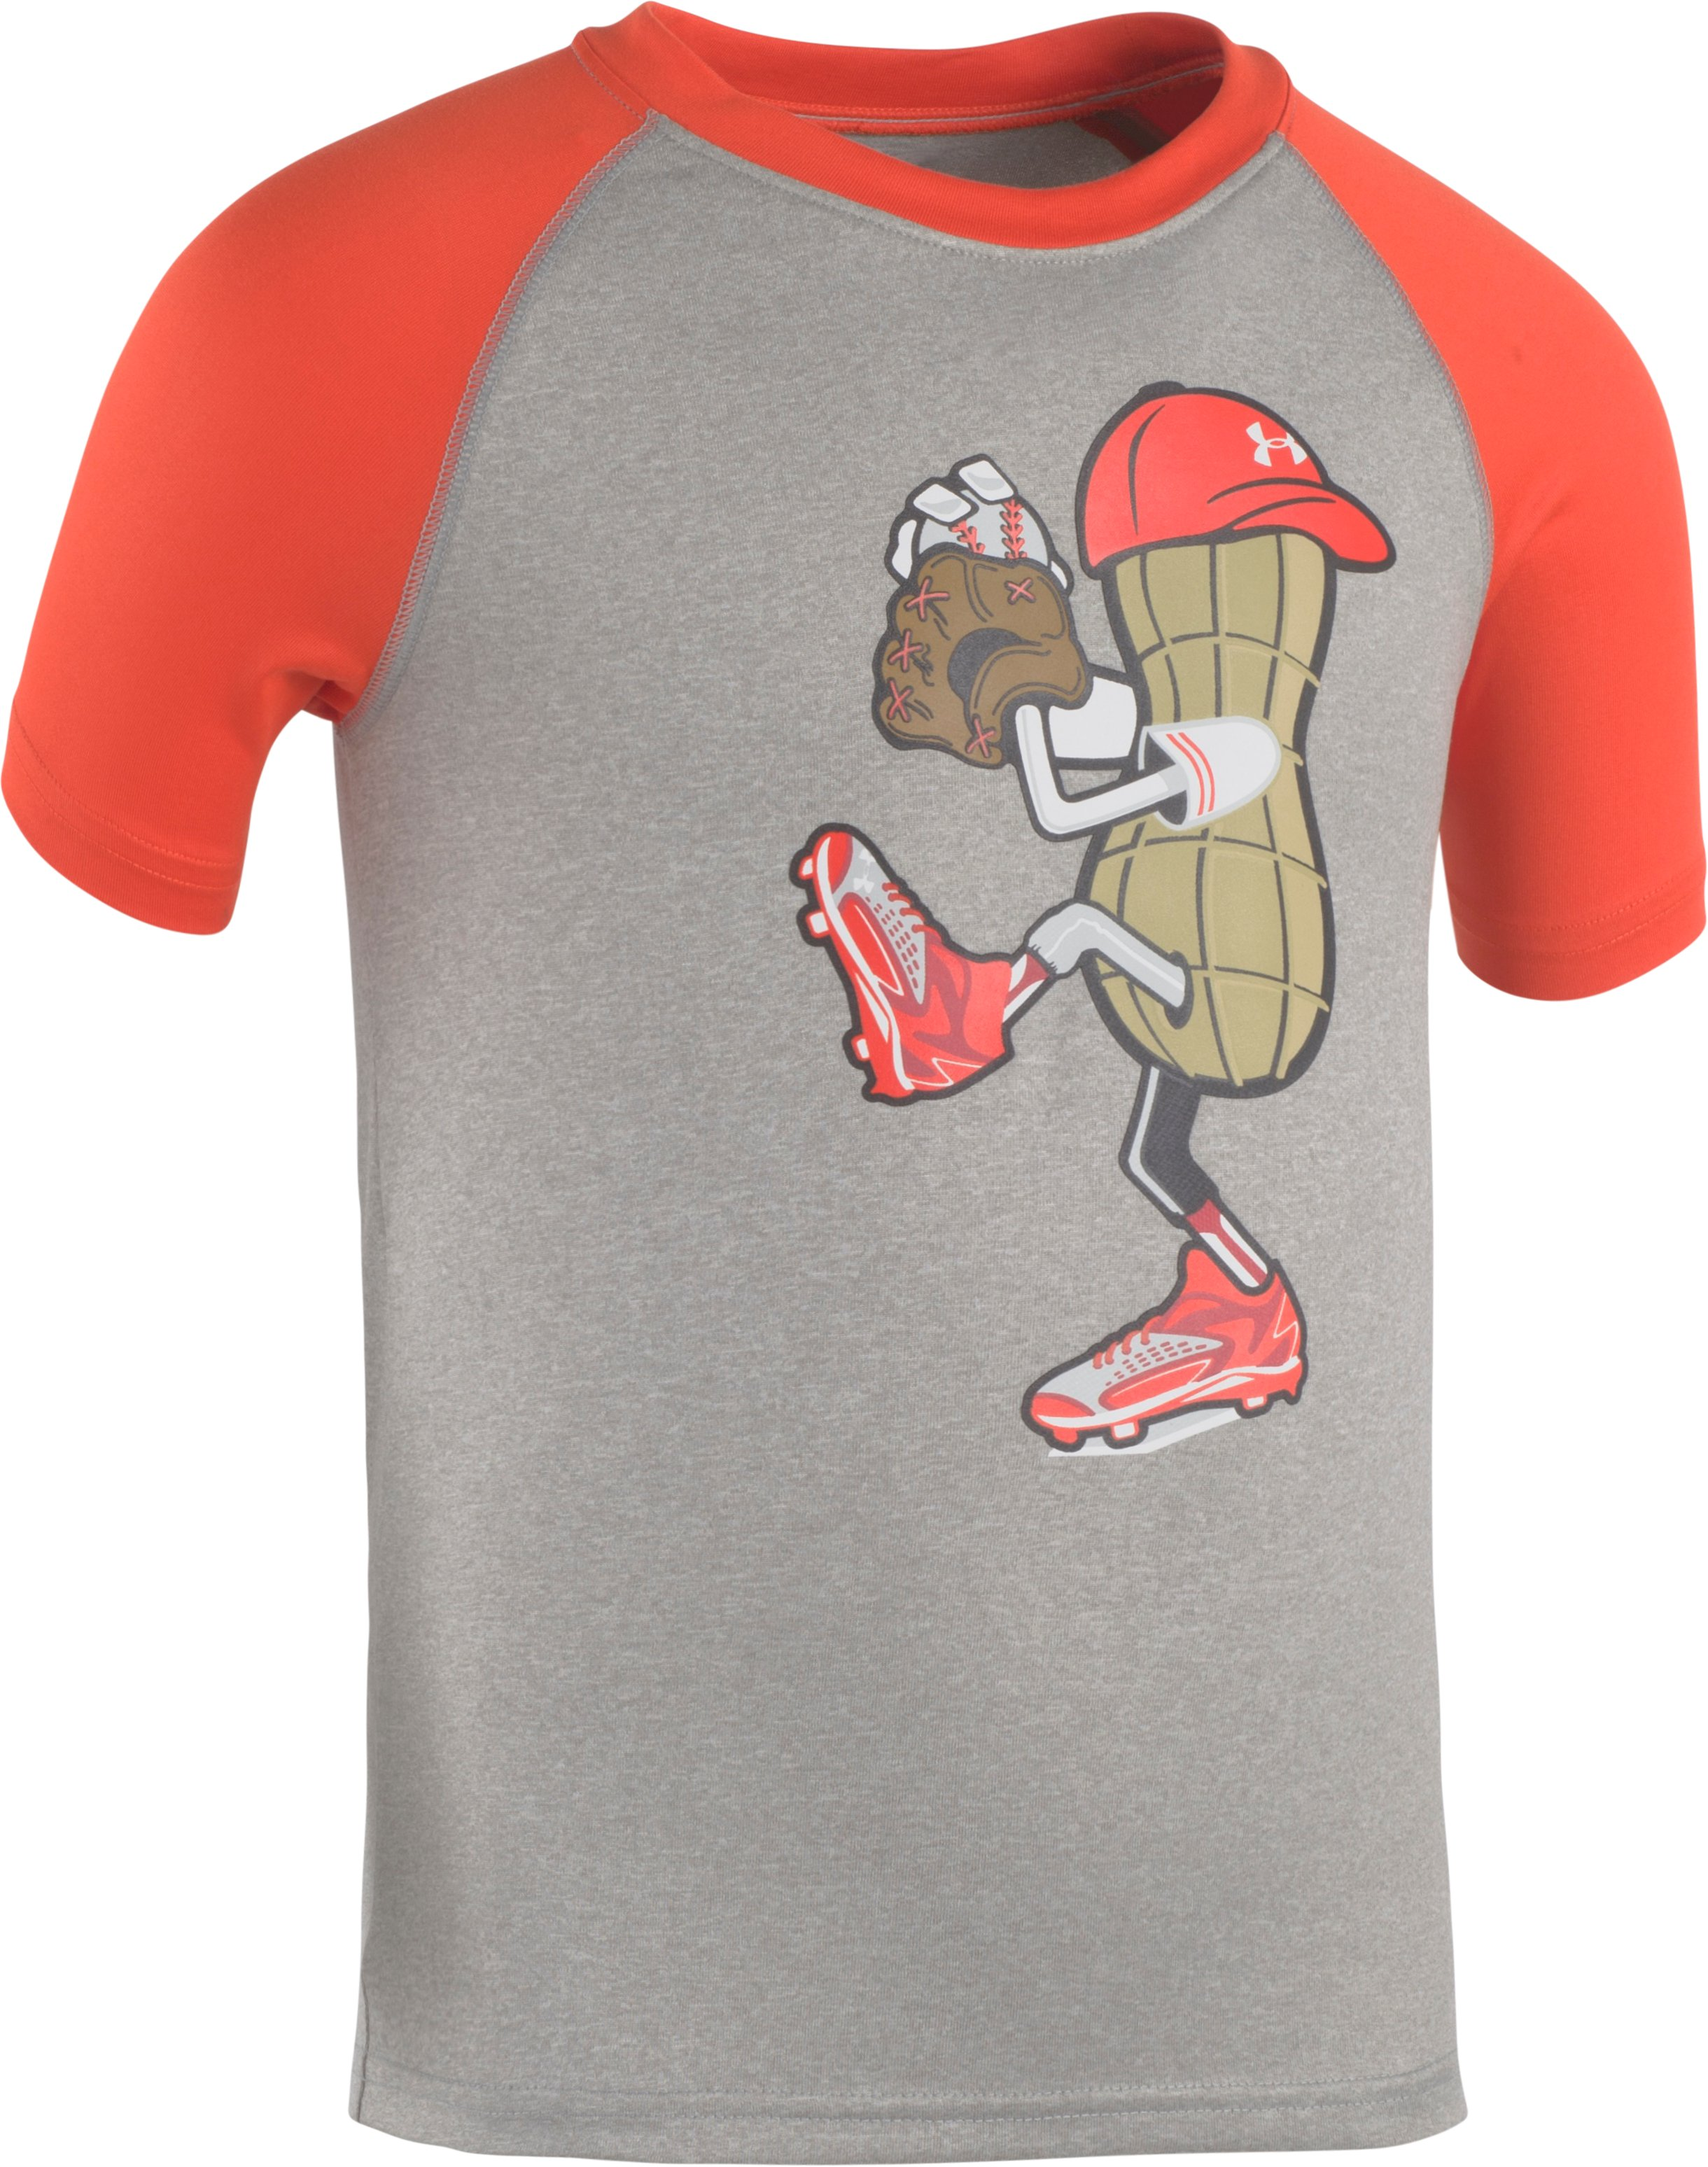 Boys' Toddler UA Peanut Pitcher Short Sleeve Shirt, True Gray Heather